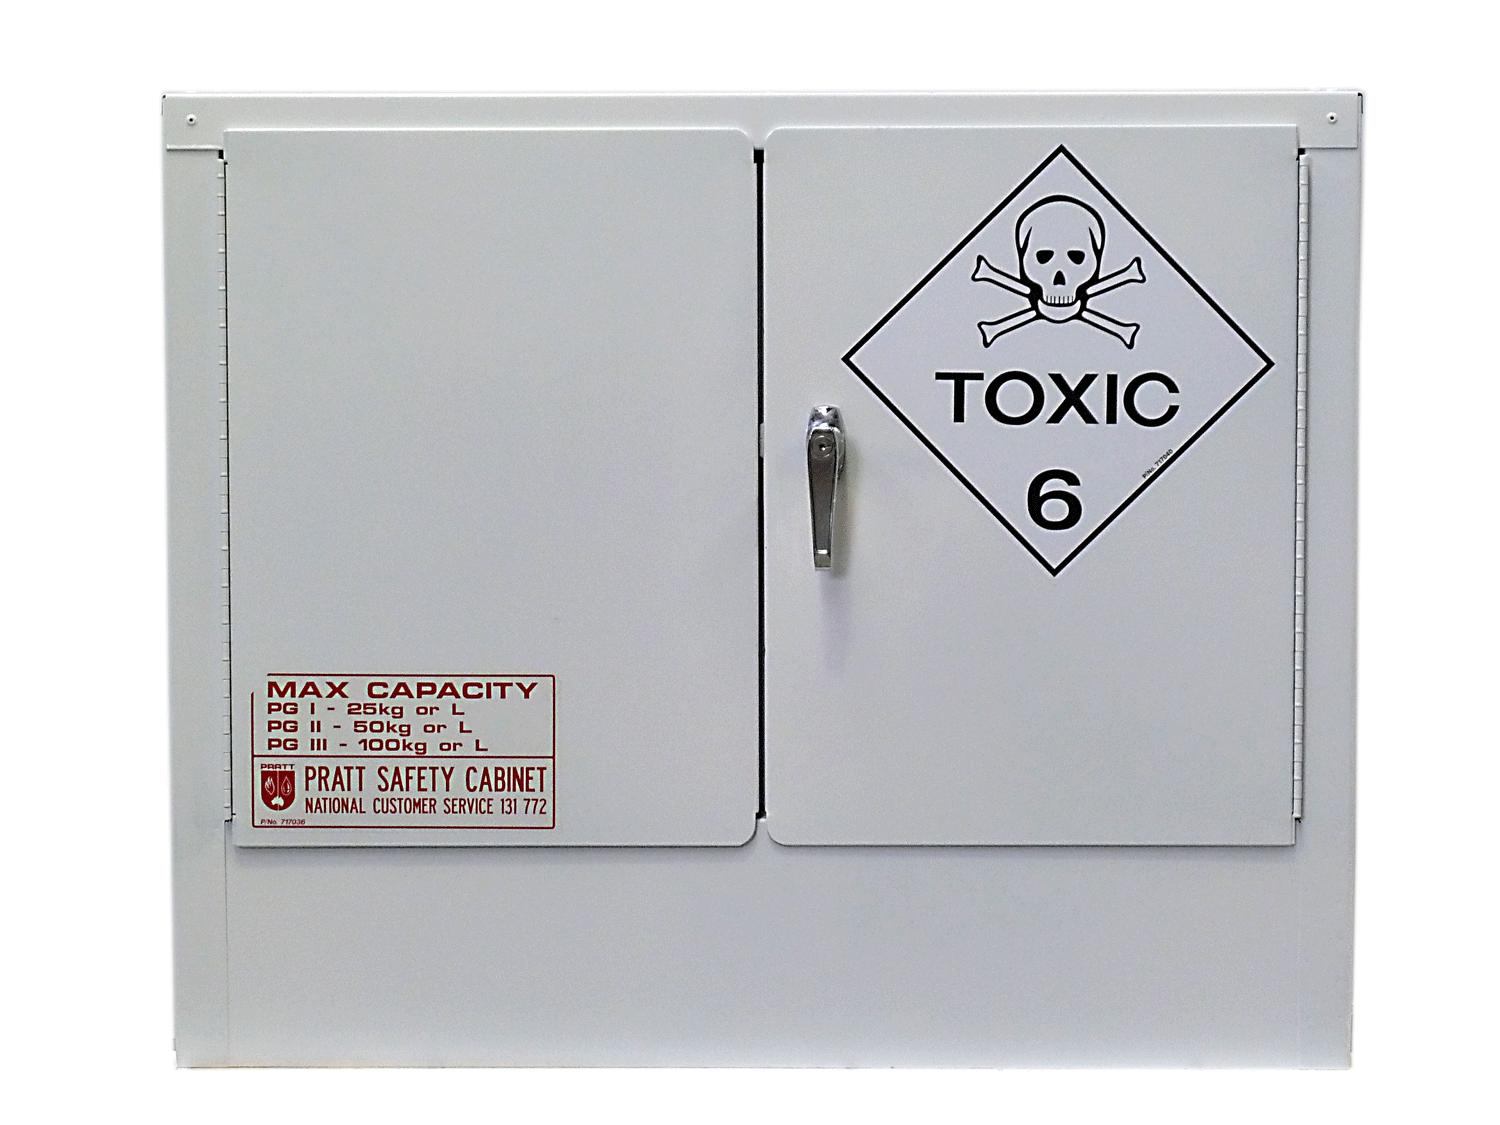 Toxic Substances Cabinet